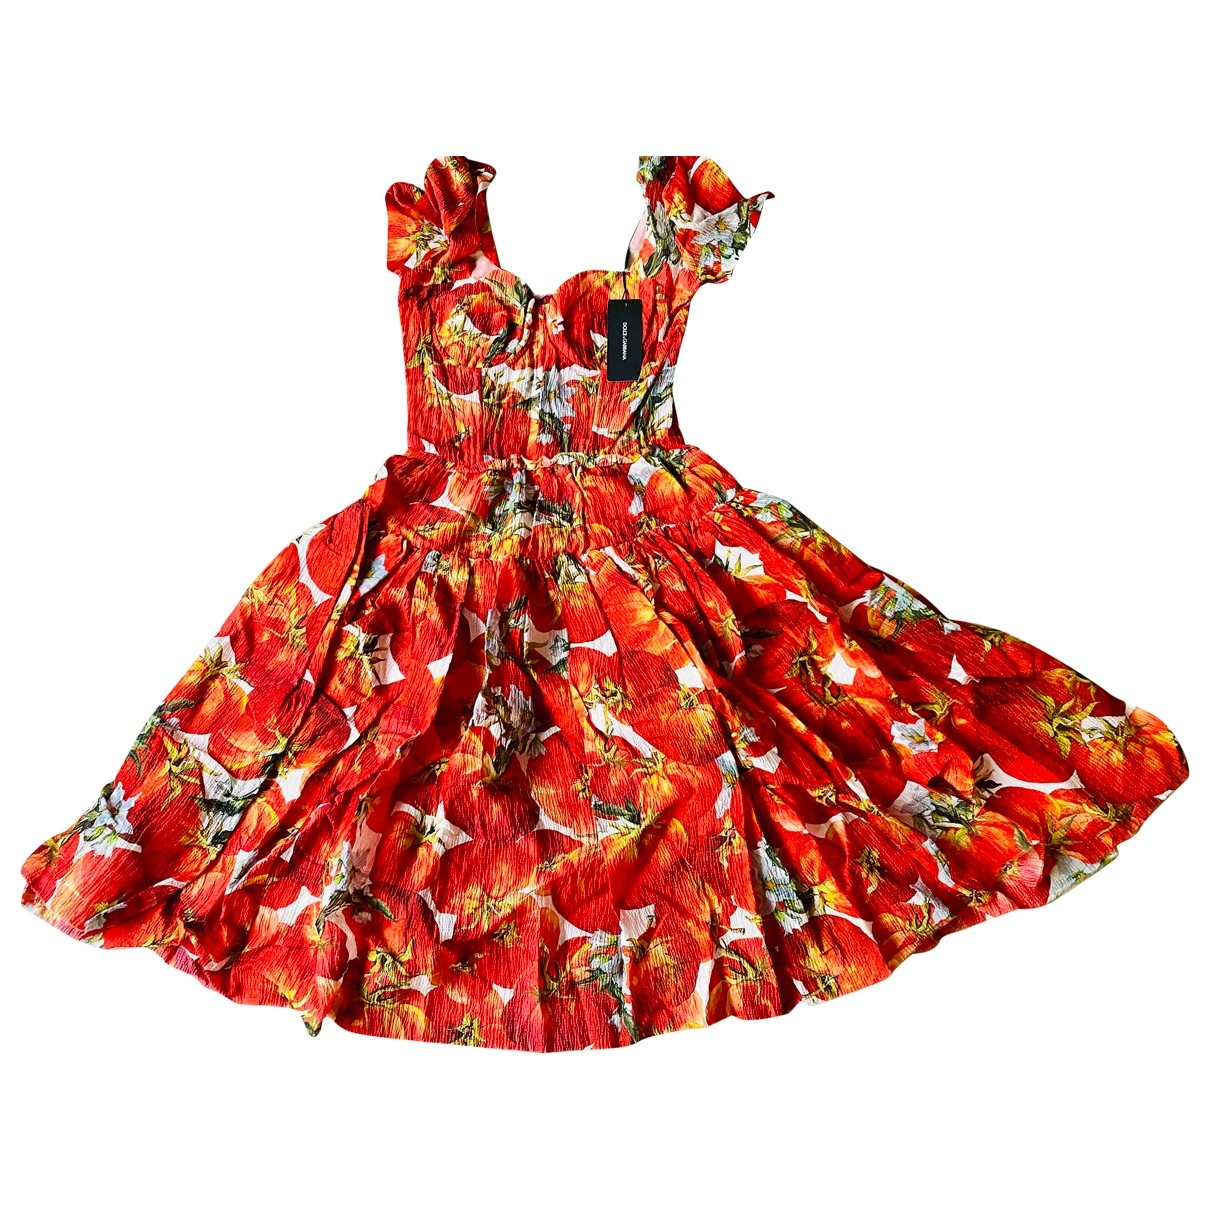 Dolce & Gabbana \N Kleid in  Rot Synthetik